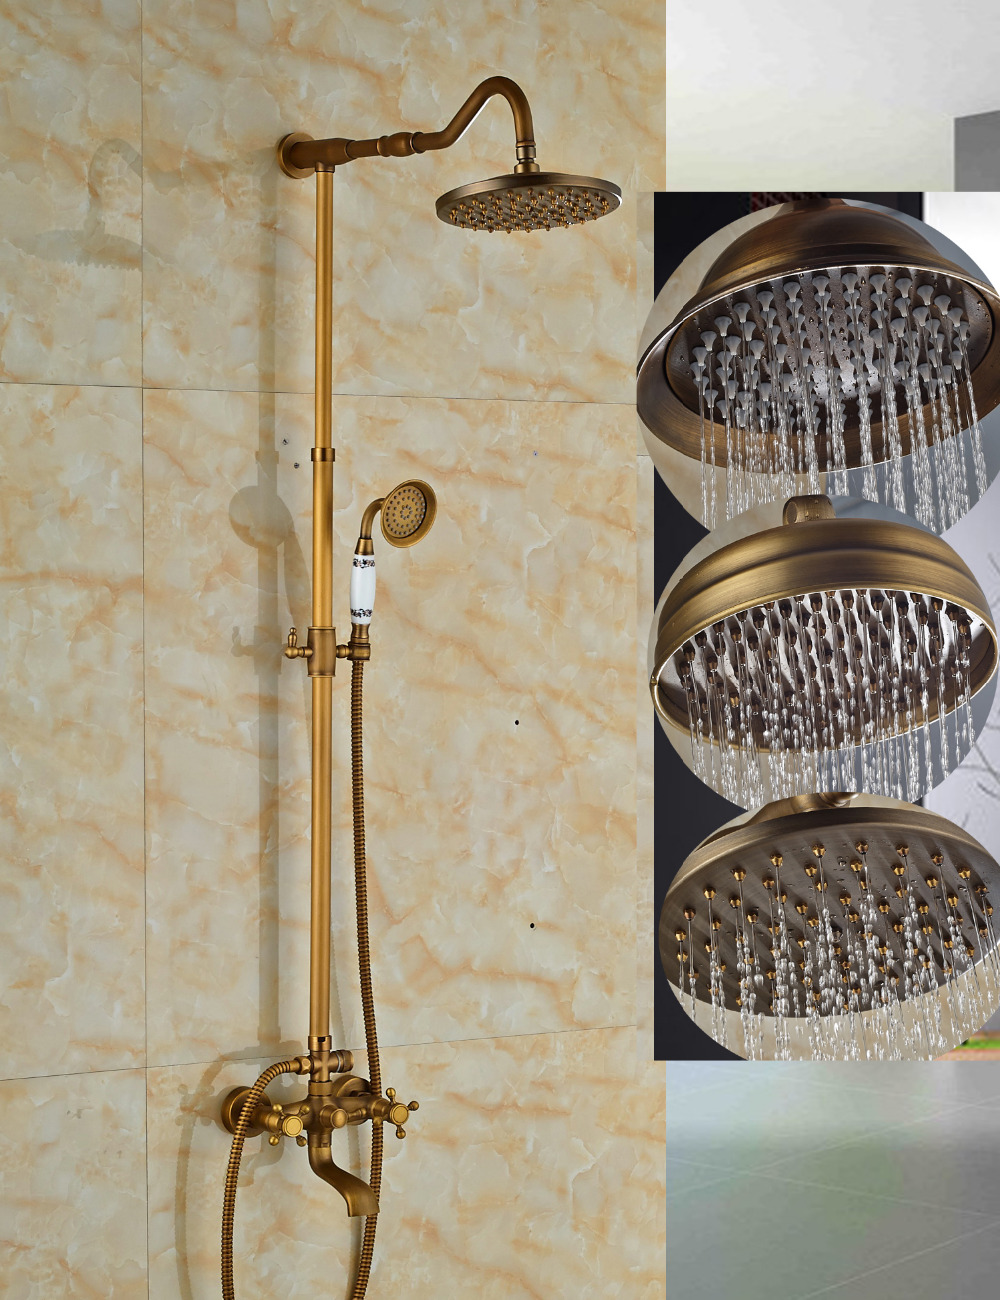 Scudders Antique Brass Finish Wall Mounted Rainfall Shower Set With Handheld Shower Tub Spout